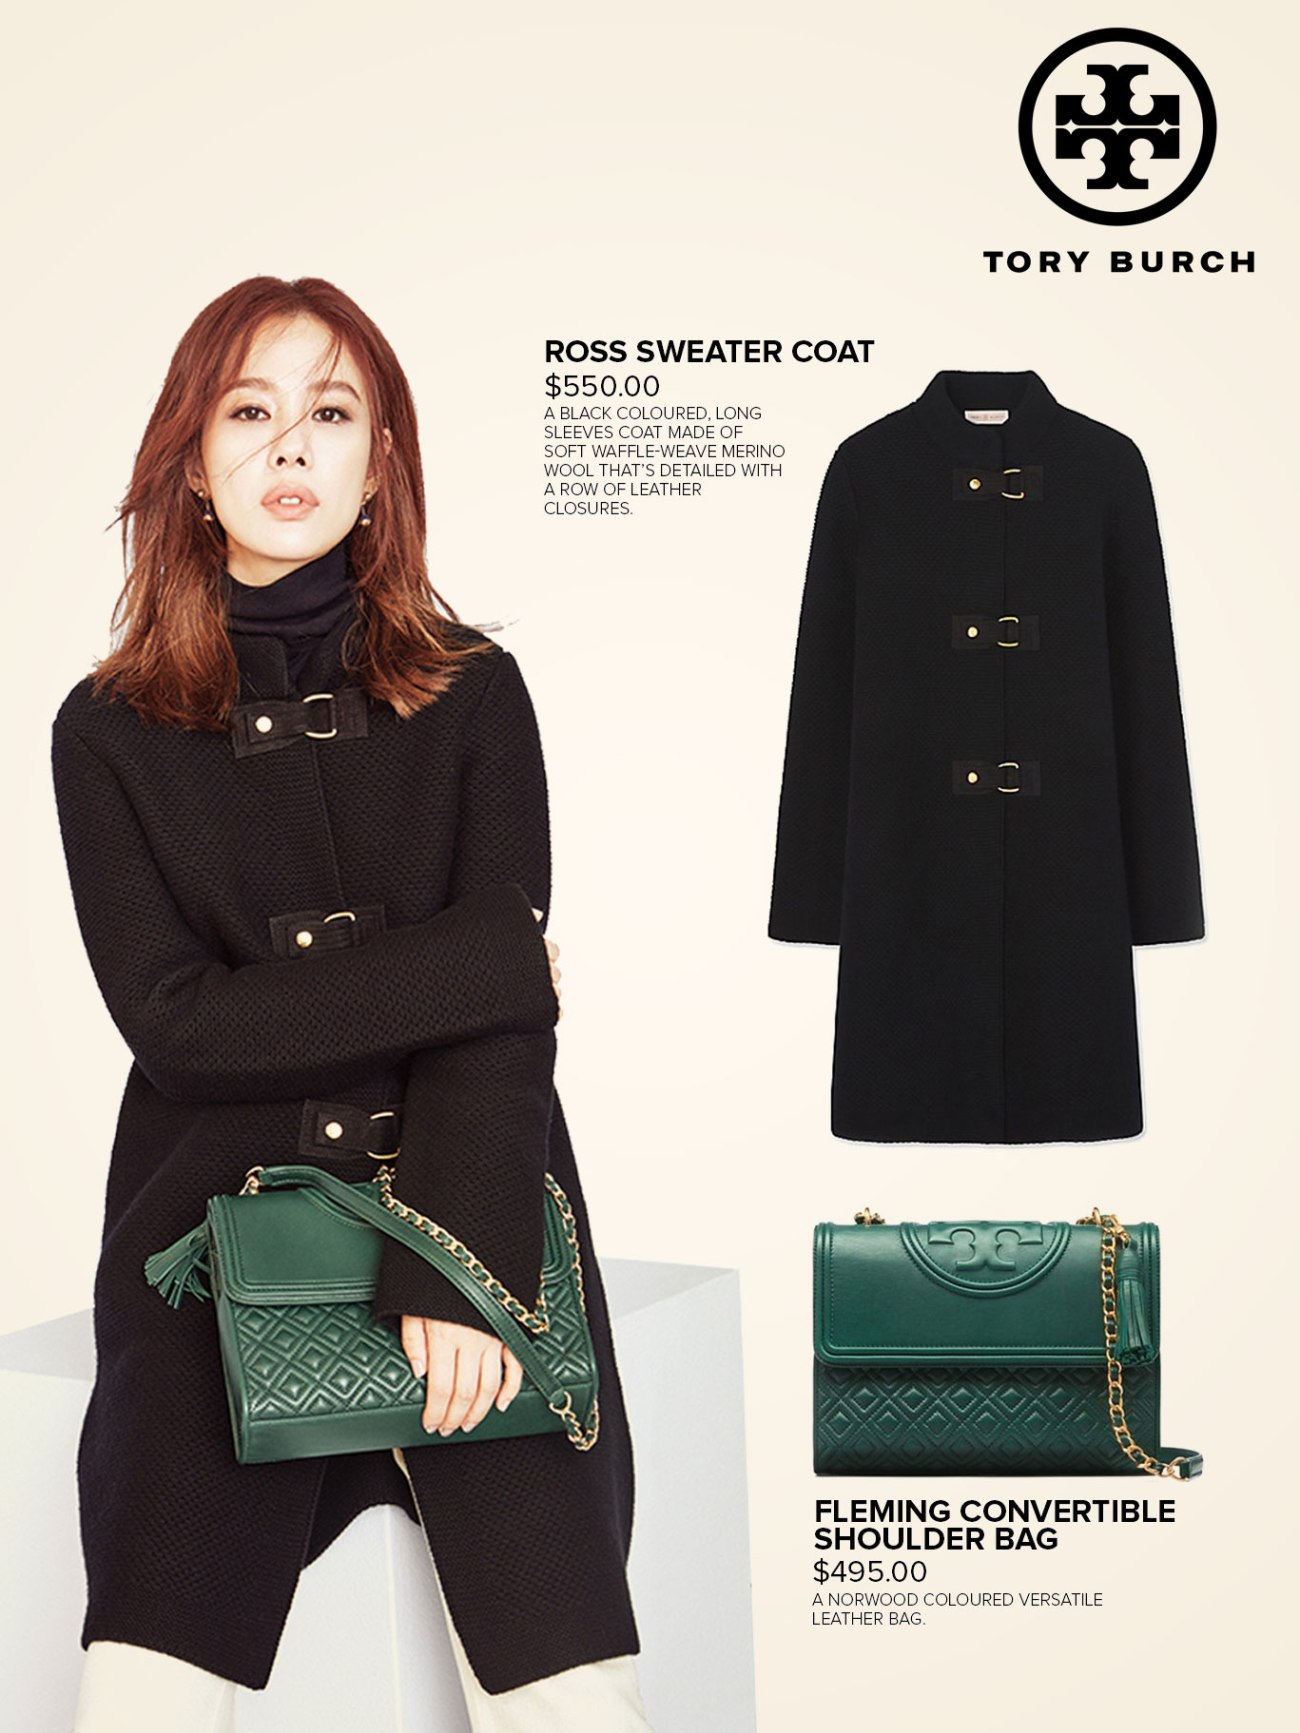 kim-hyun-joo-models-tory-burch-for-elle-10-drama-chronicles